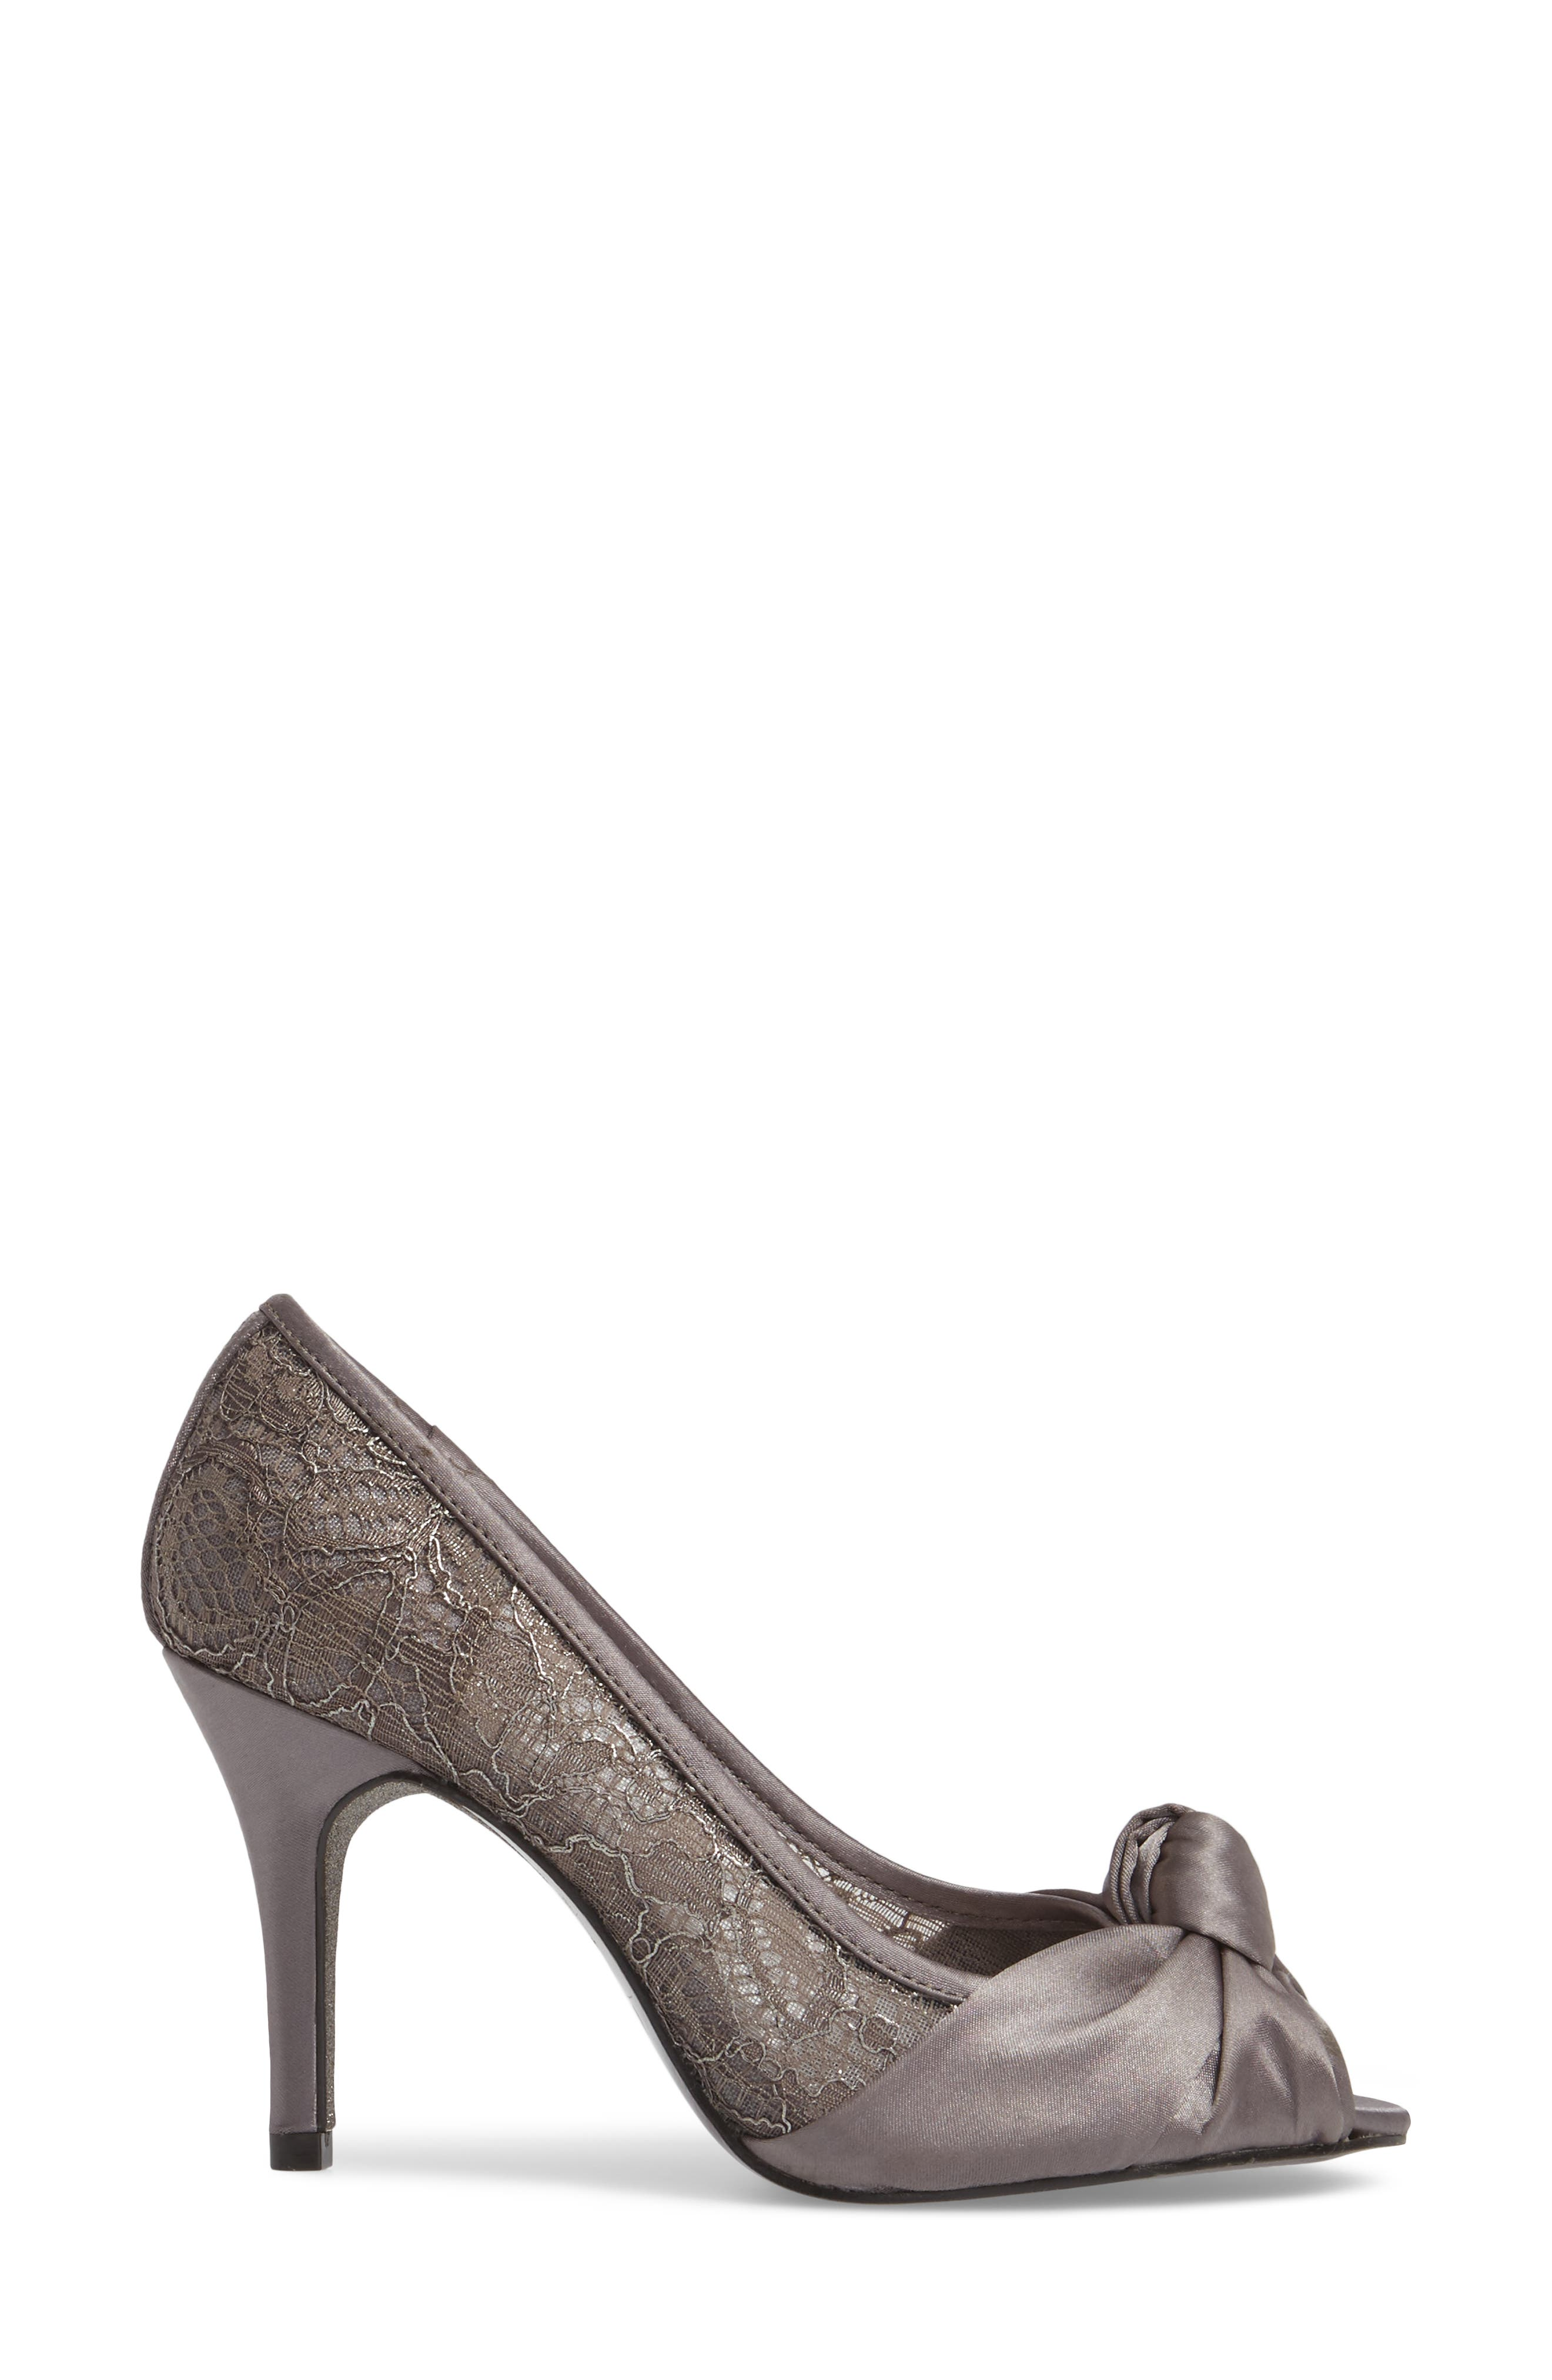 Francesca Knotted Peep Toe Pump,                             Alternate thumbnail 3, color,                             Steel Satin